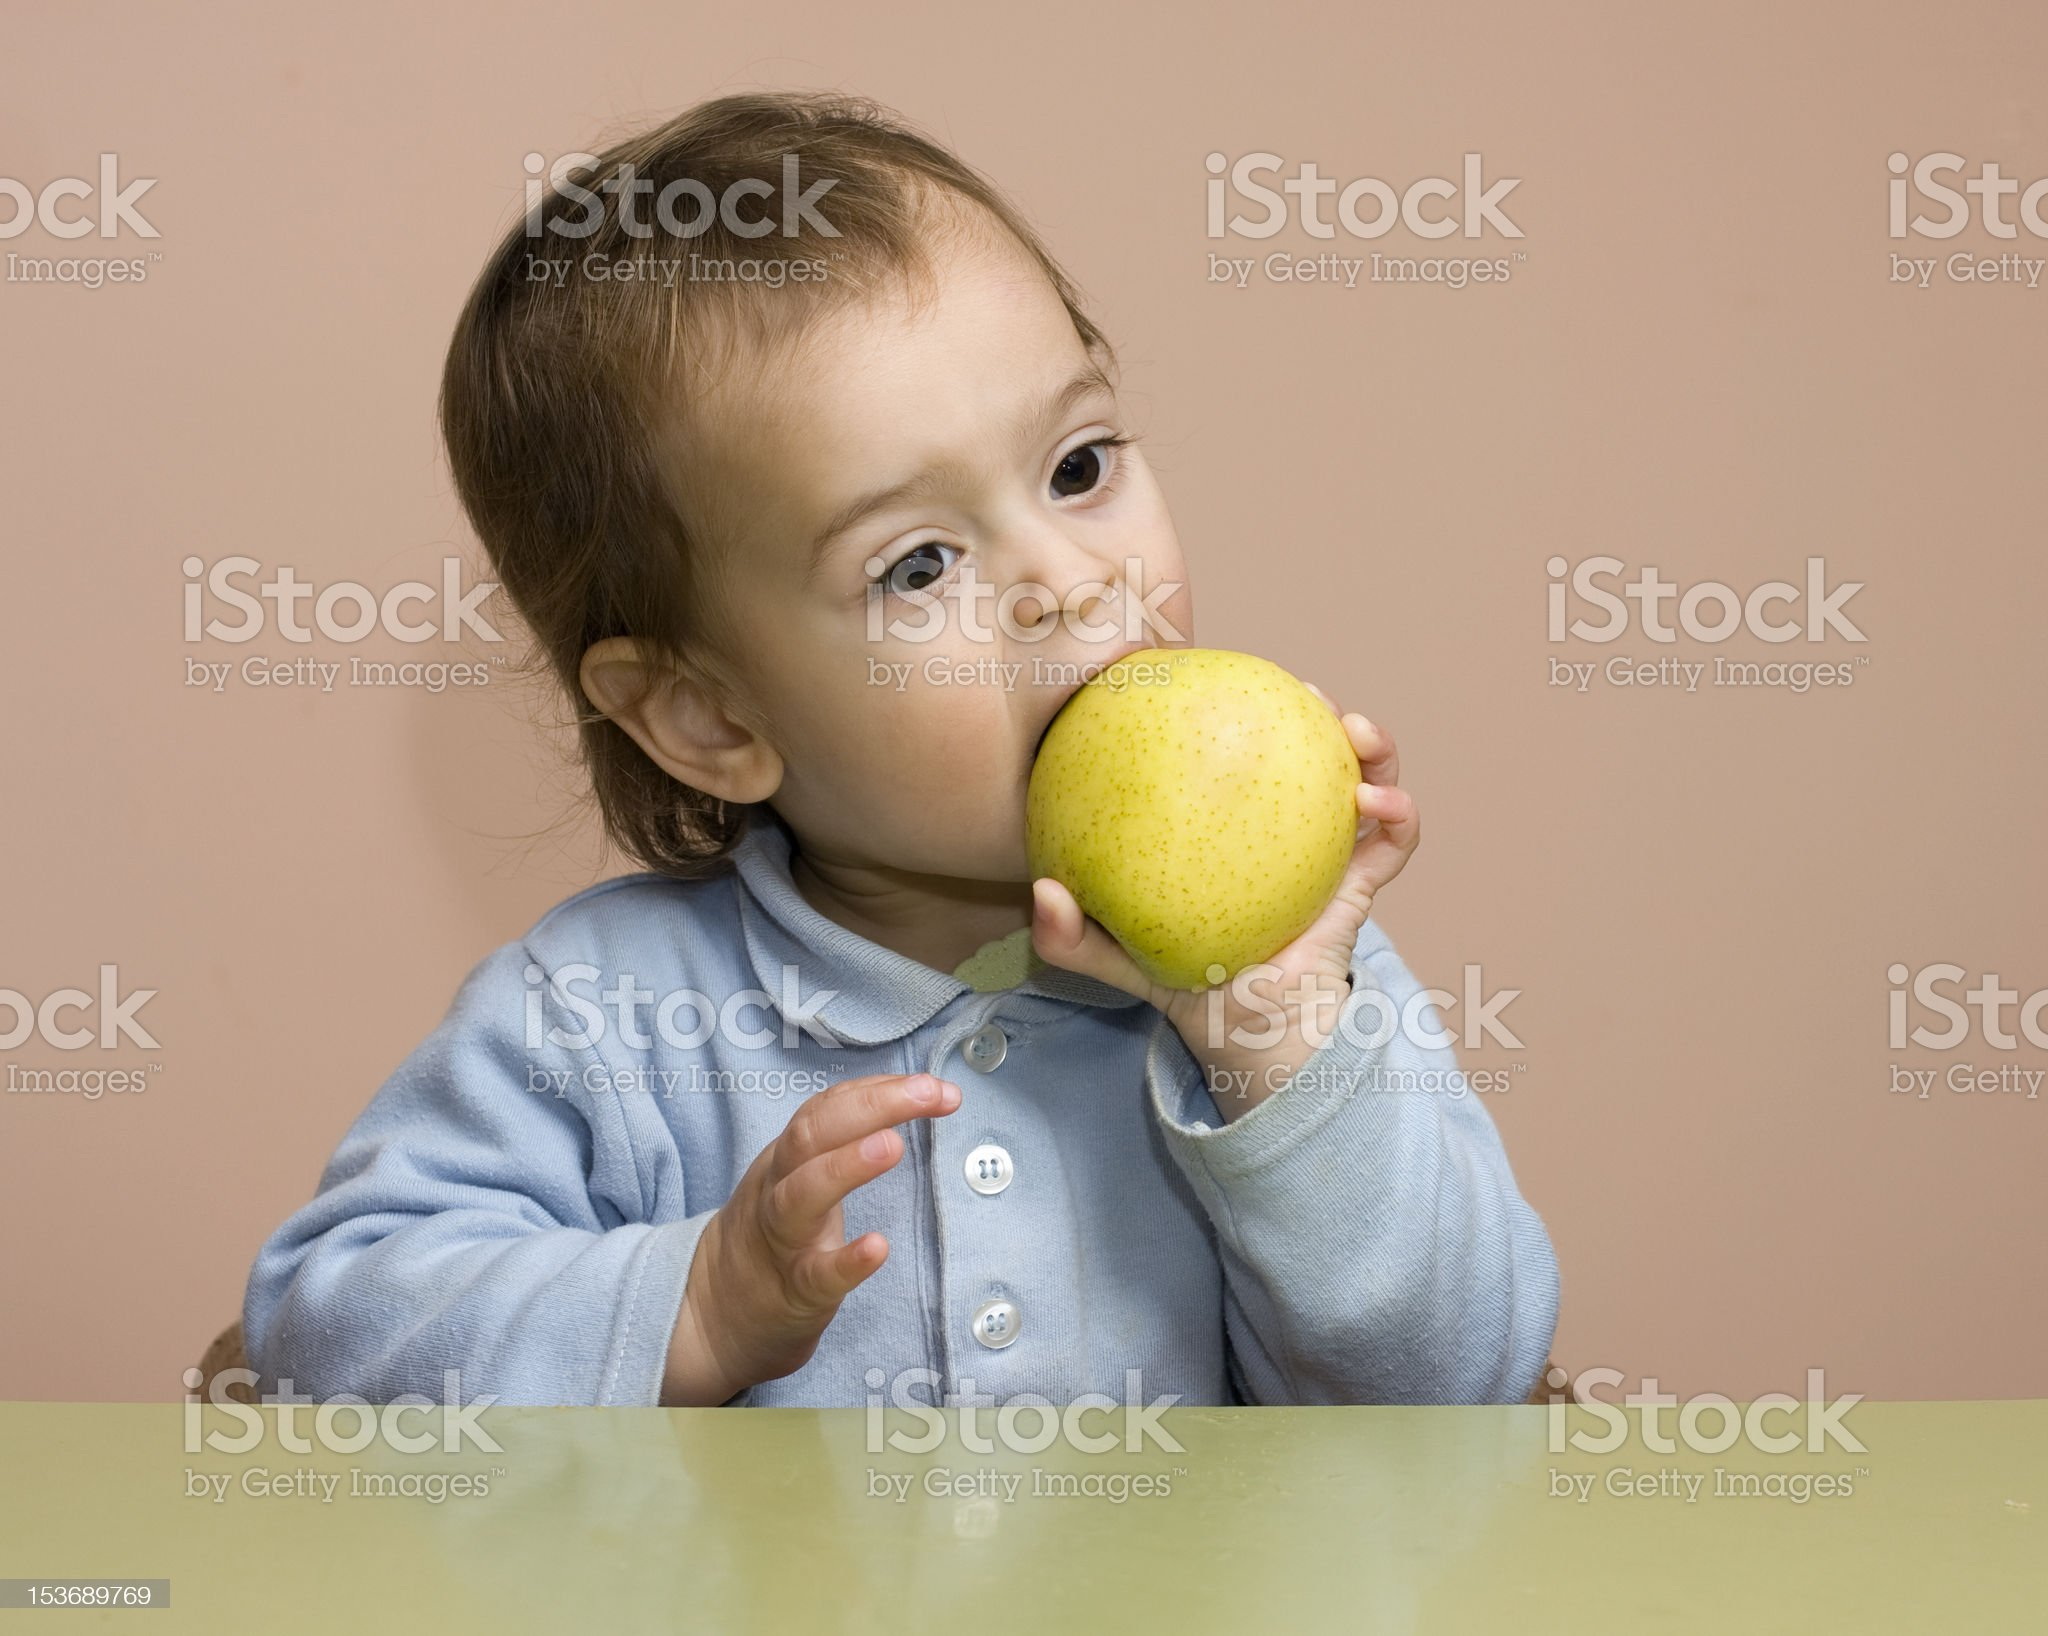 baby boy is eating yellow apple royalty-free stock photo